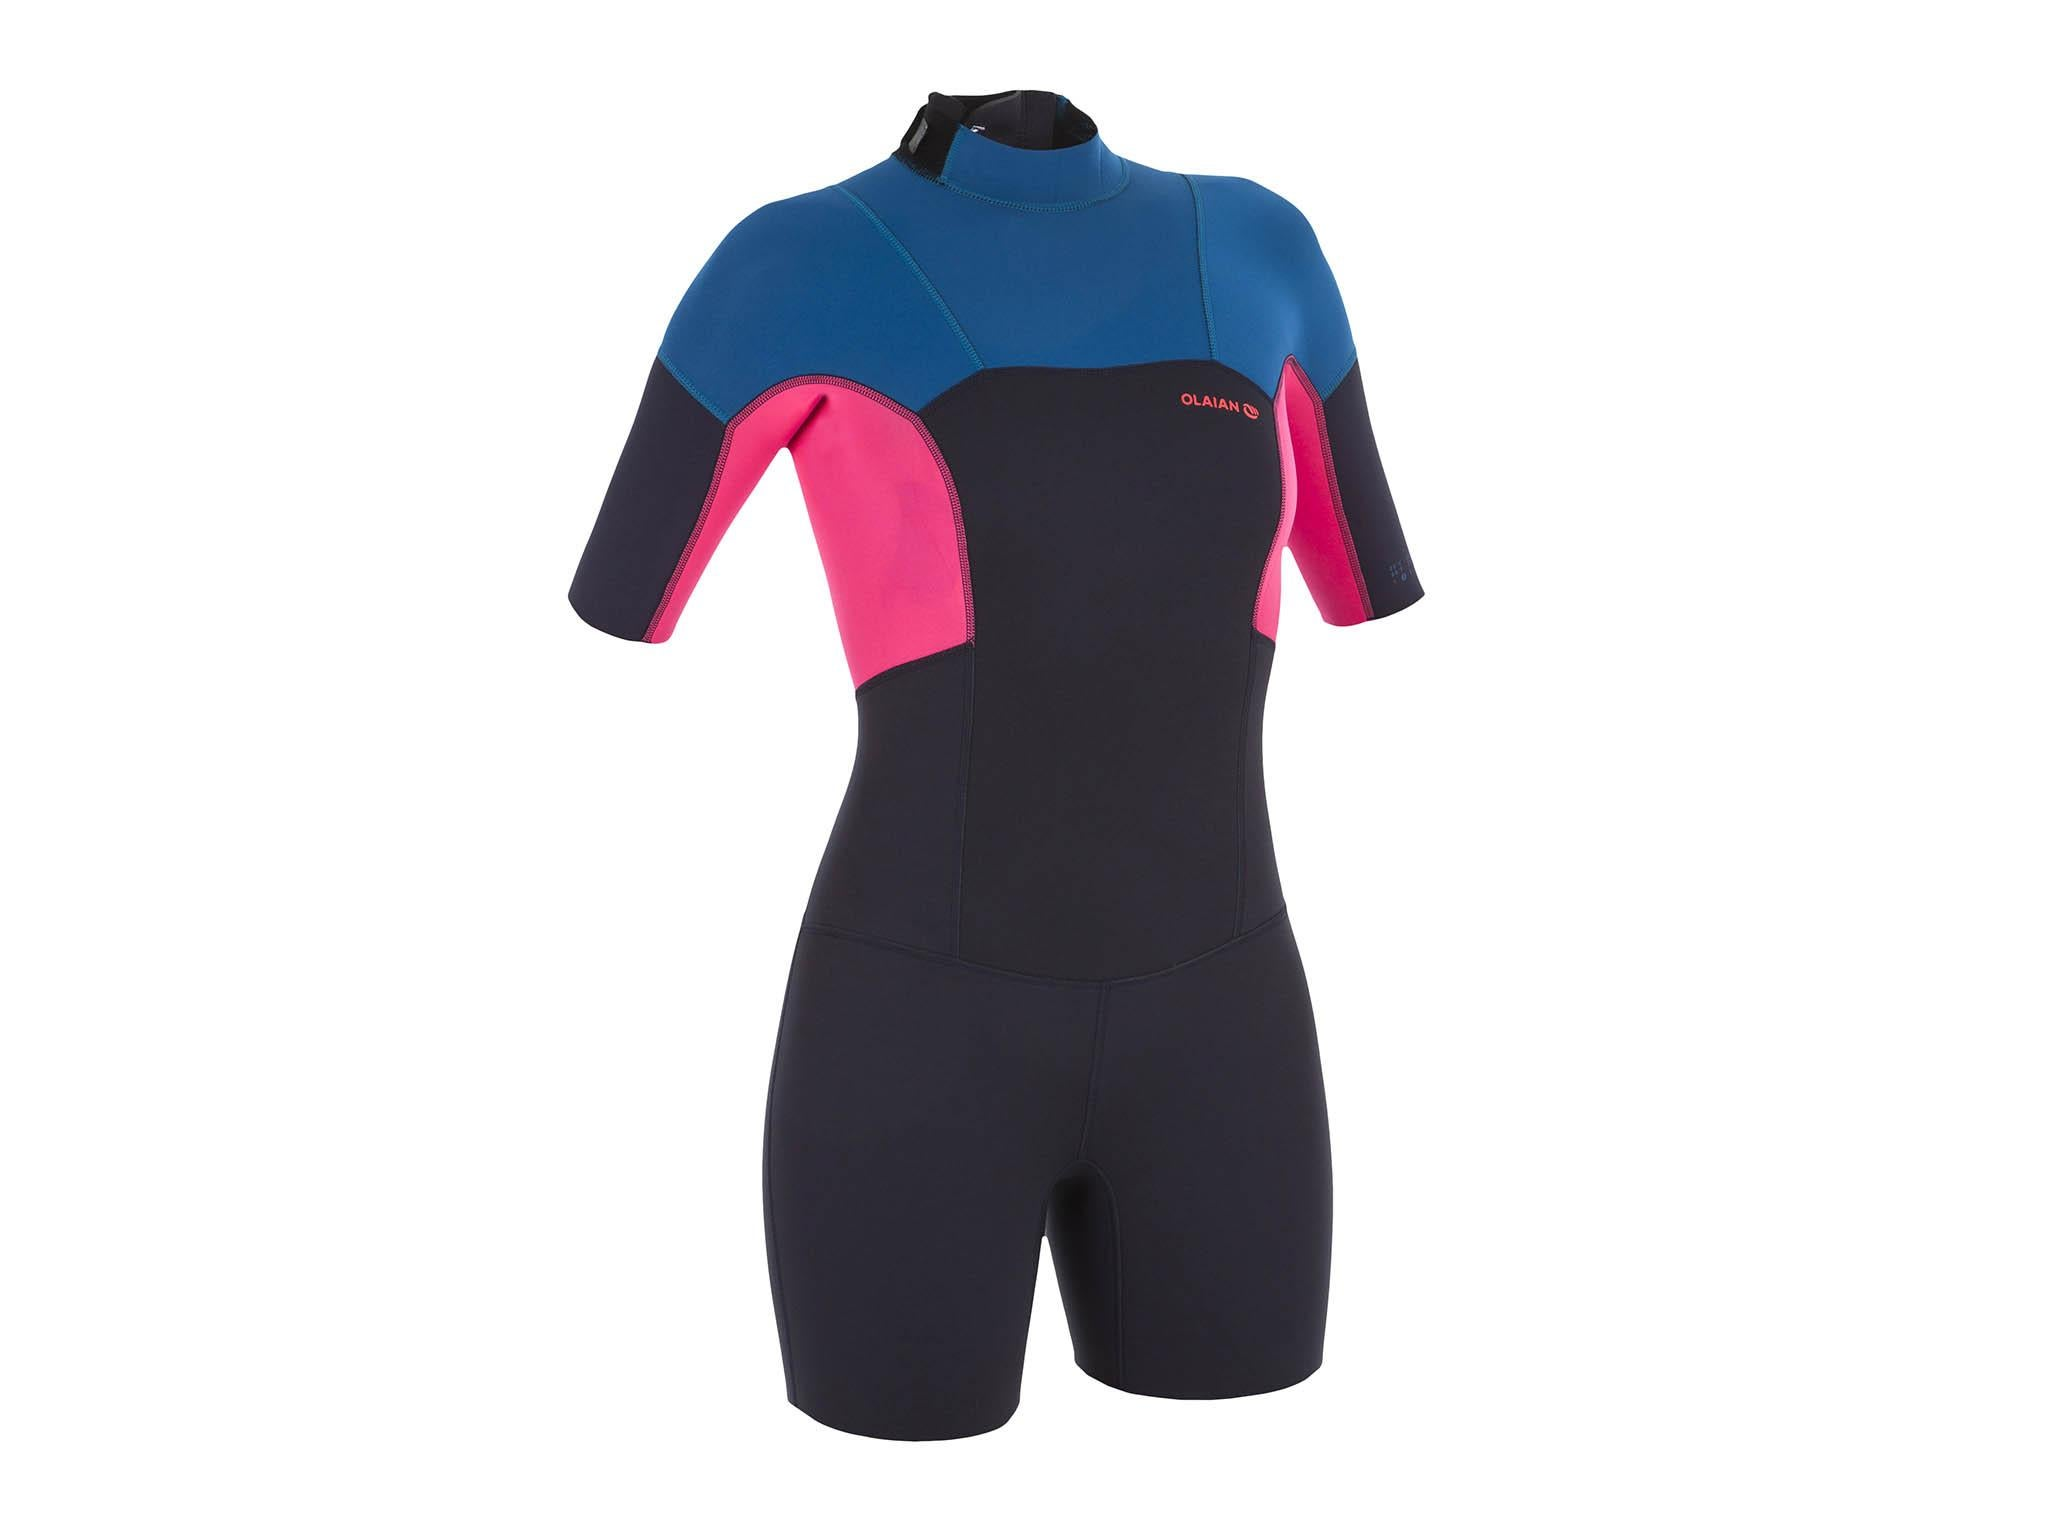 Legacy Watersports Mens 5mm Full Length Winter Wetsuit Sizes S - XXXL